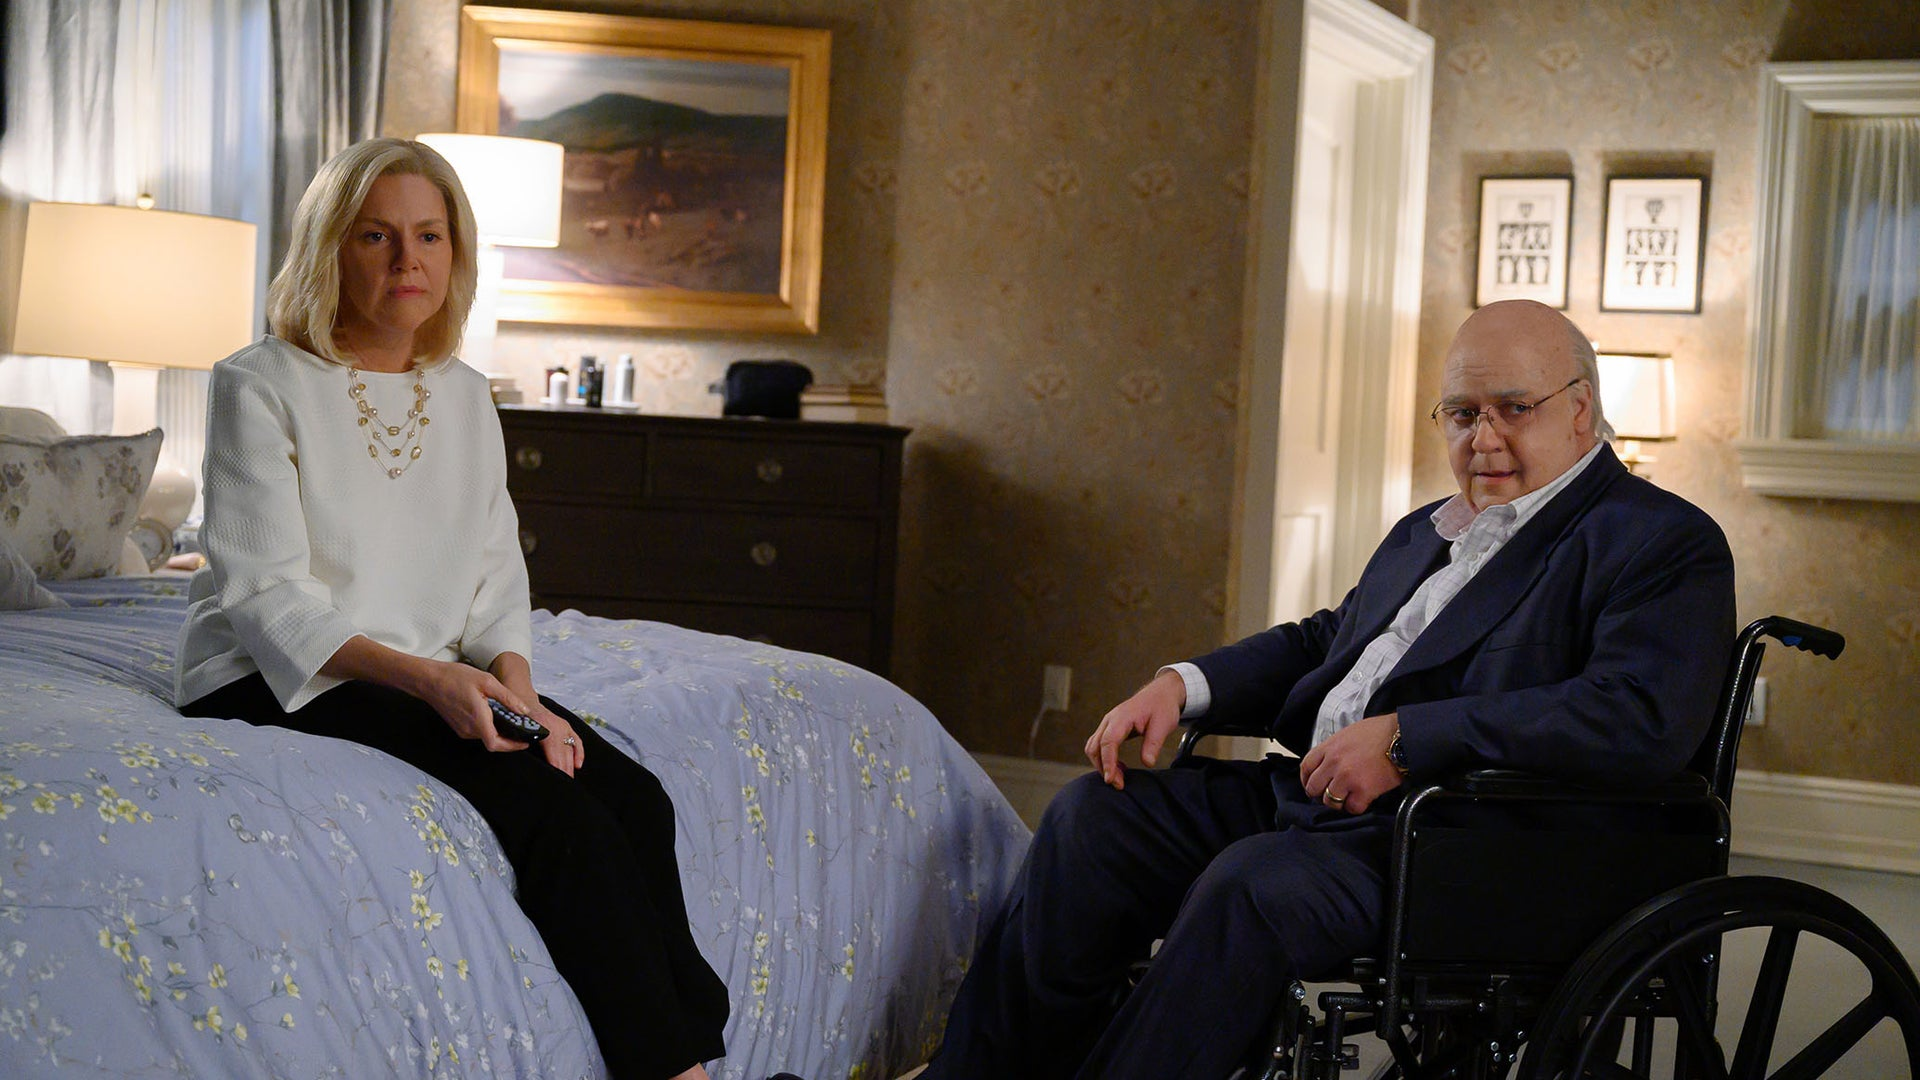 Sienna Miller as Elizabeth Ailes and Russell Crowe as Roger Ailes in The Loudest Voice